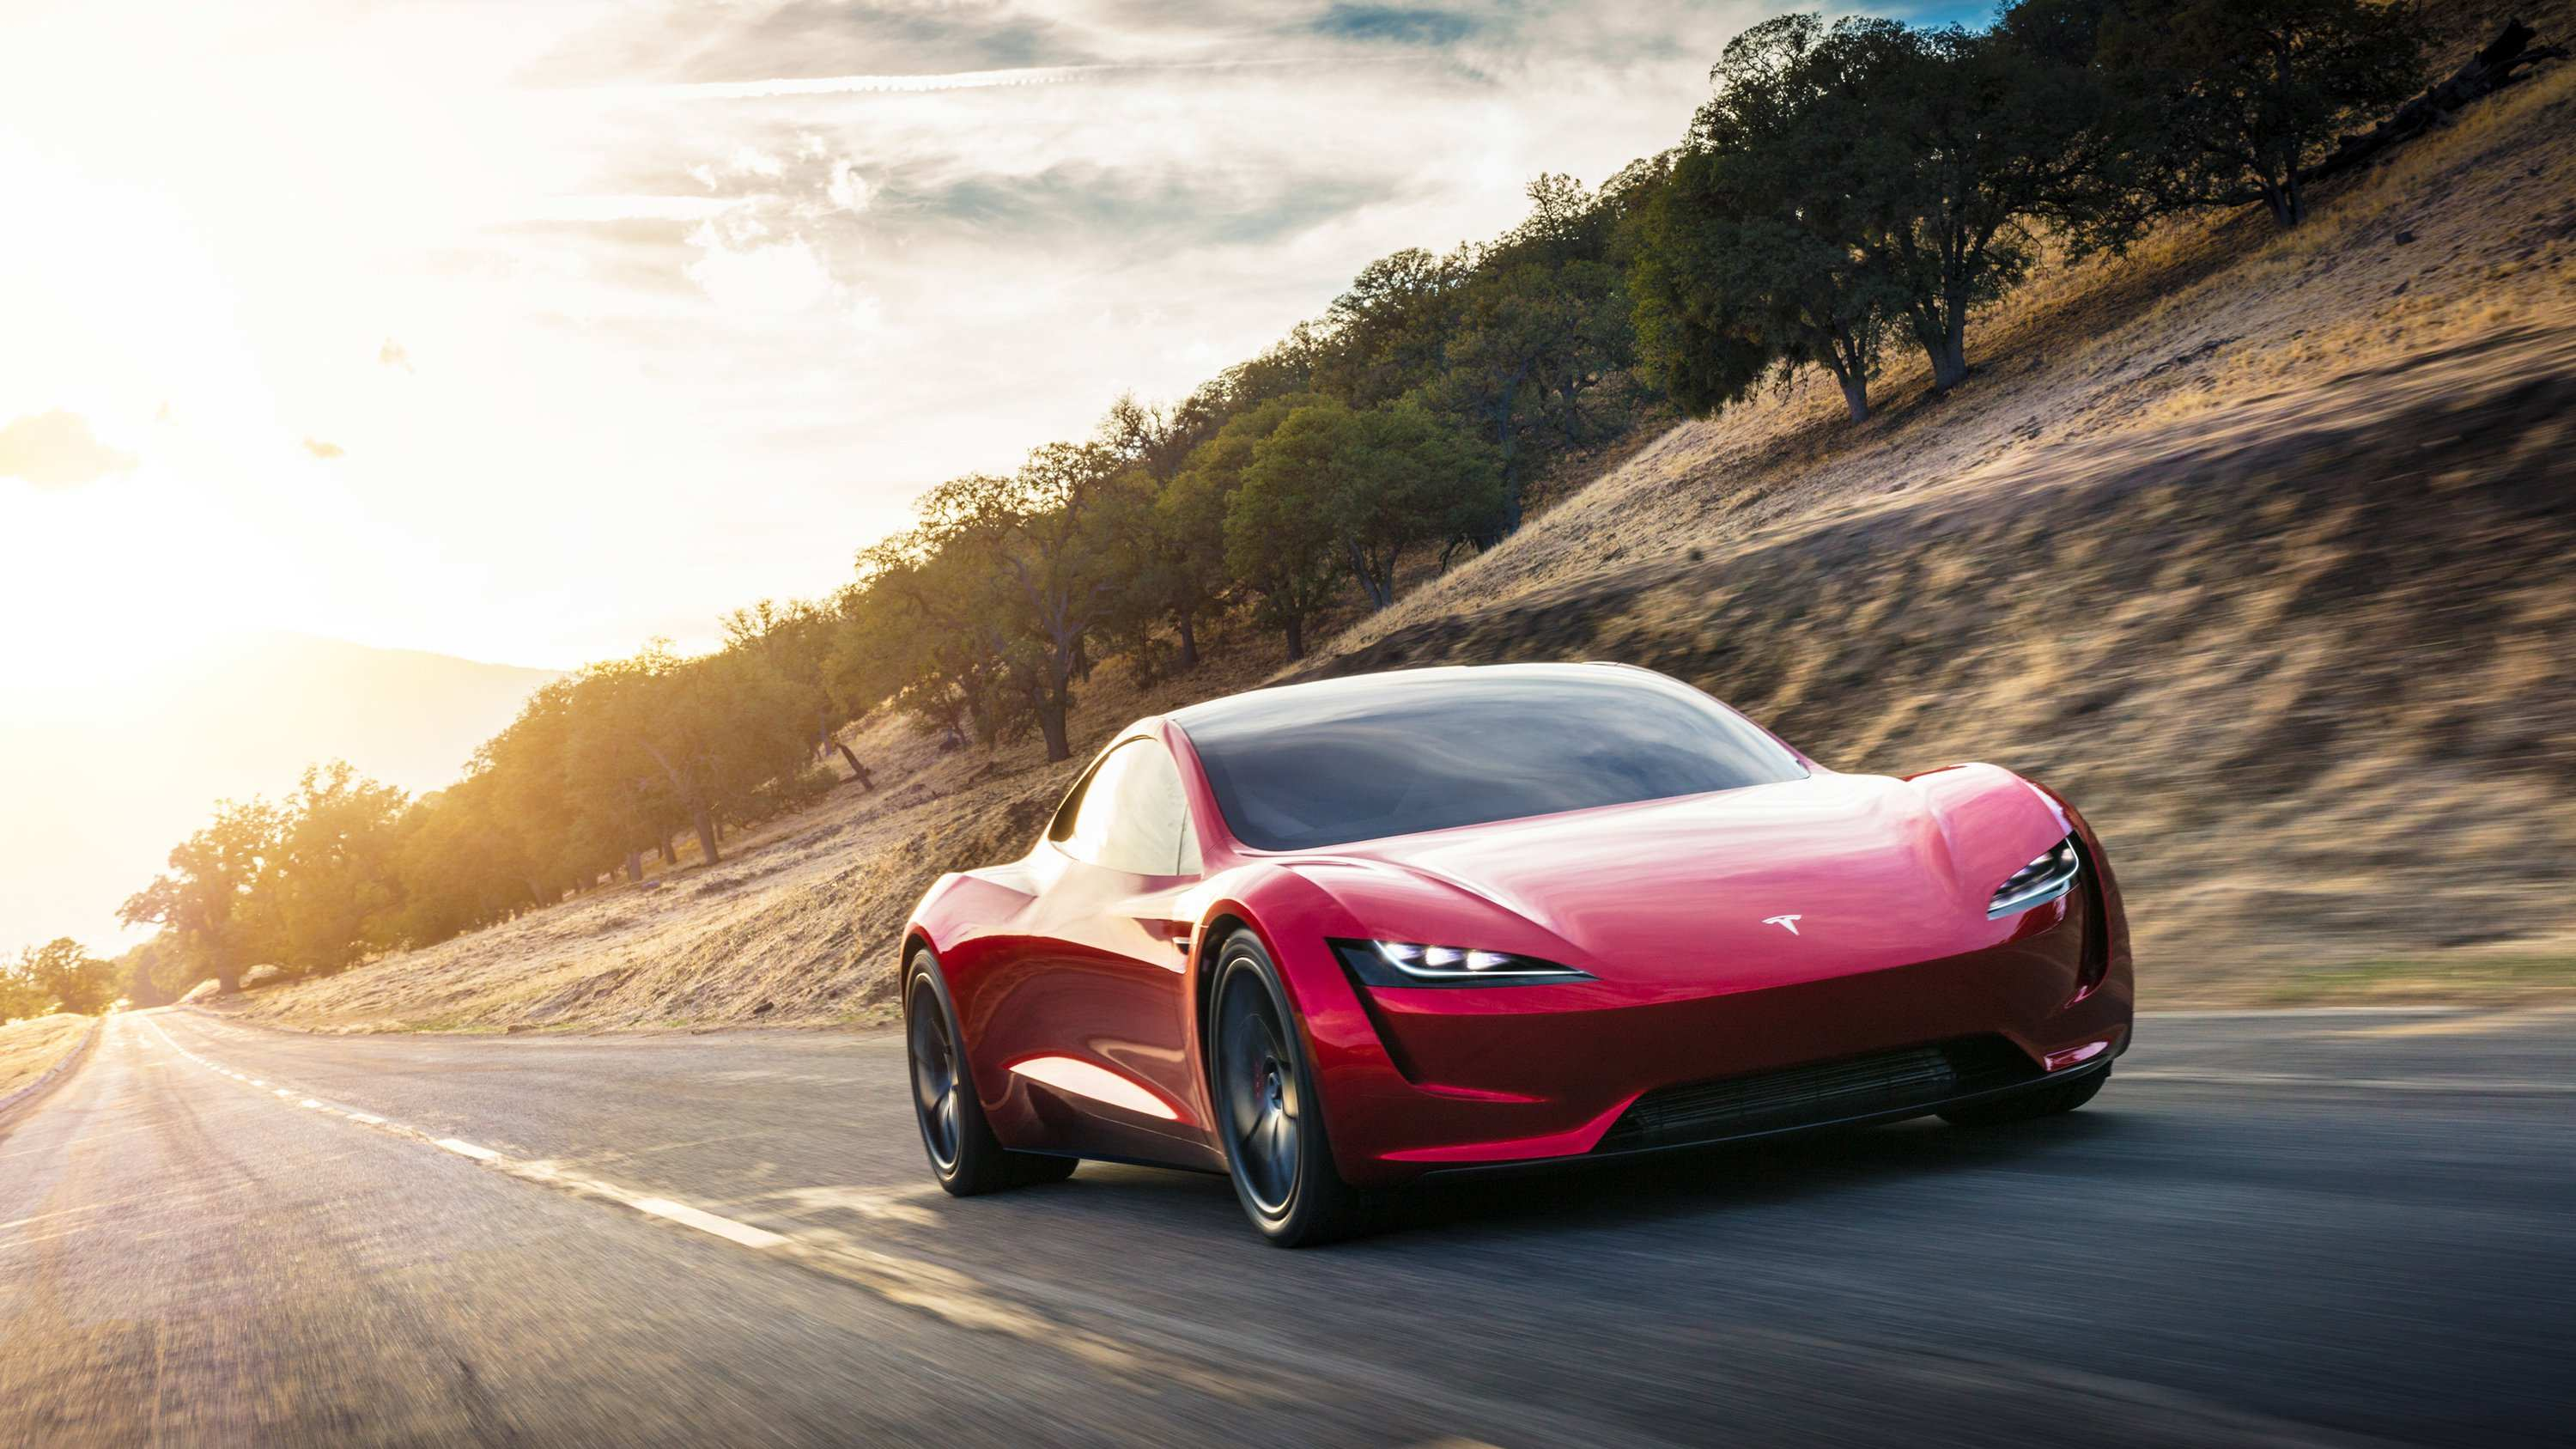 43 New 2020 Tesla Roadster Quarter Mile Price And Review